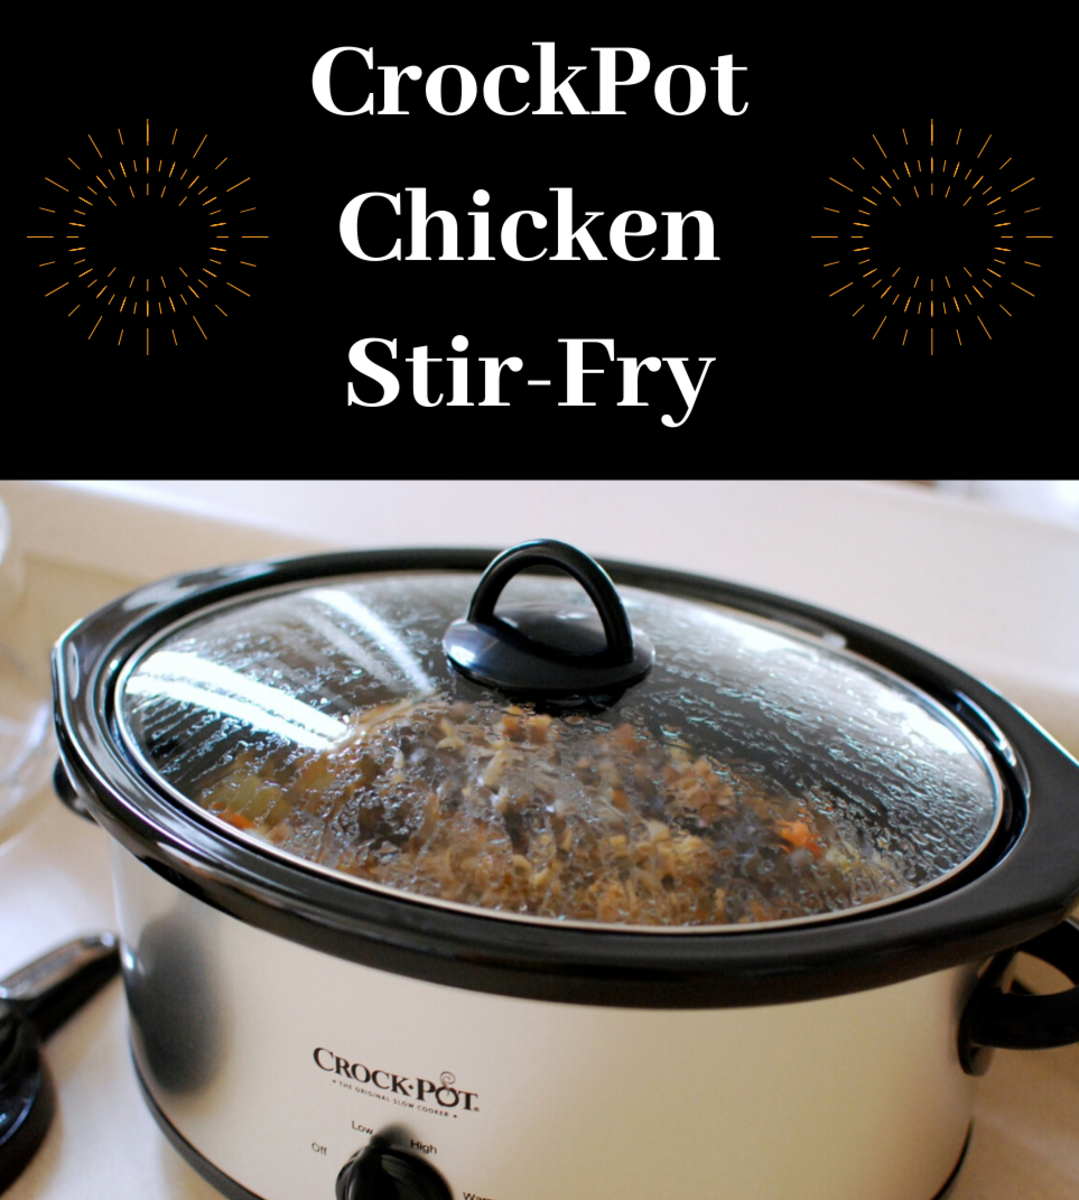 A modern, oval-shaped slow cooker.